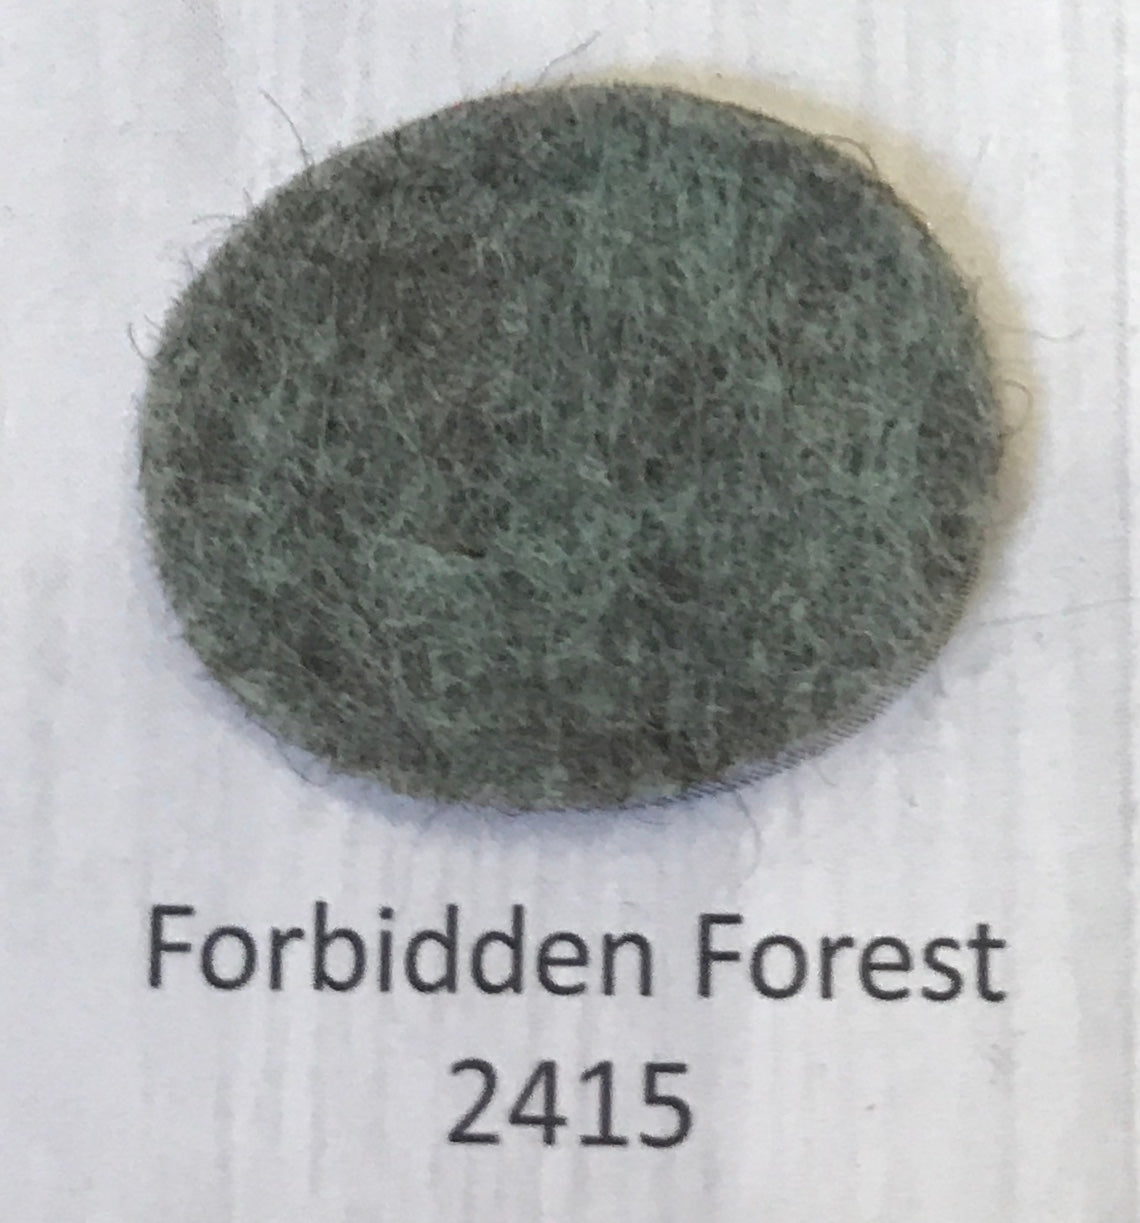 Forbidden Forest - 2415